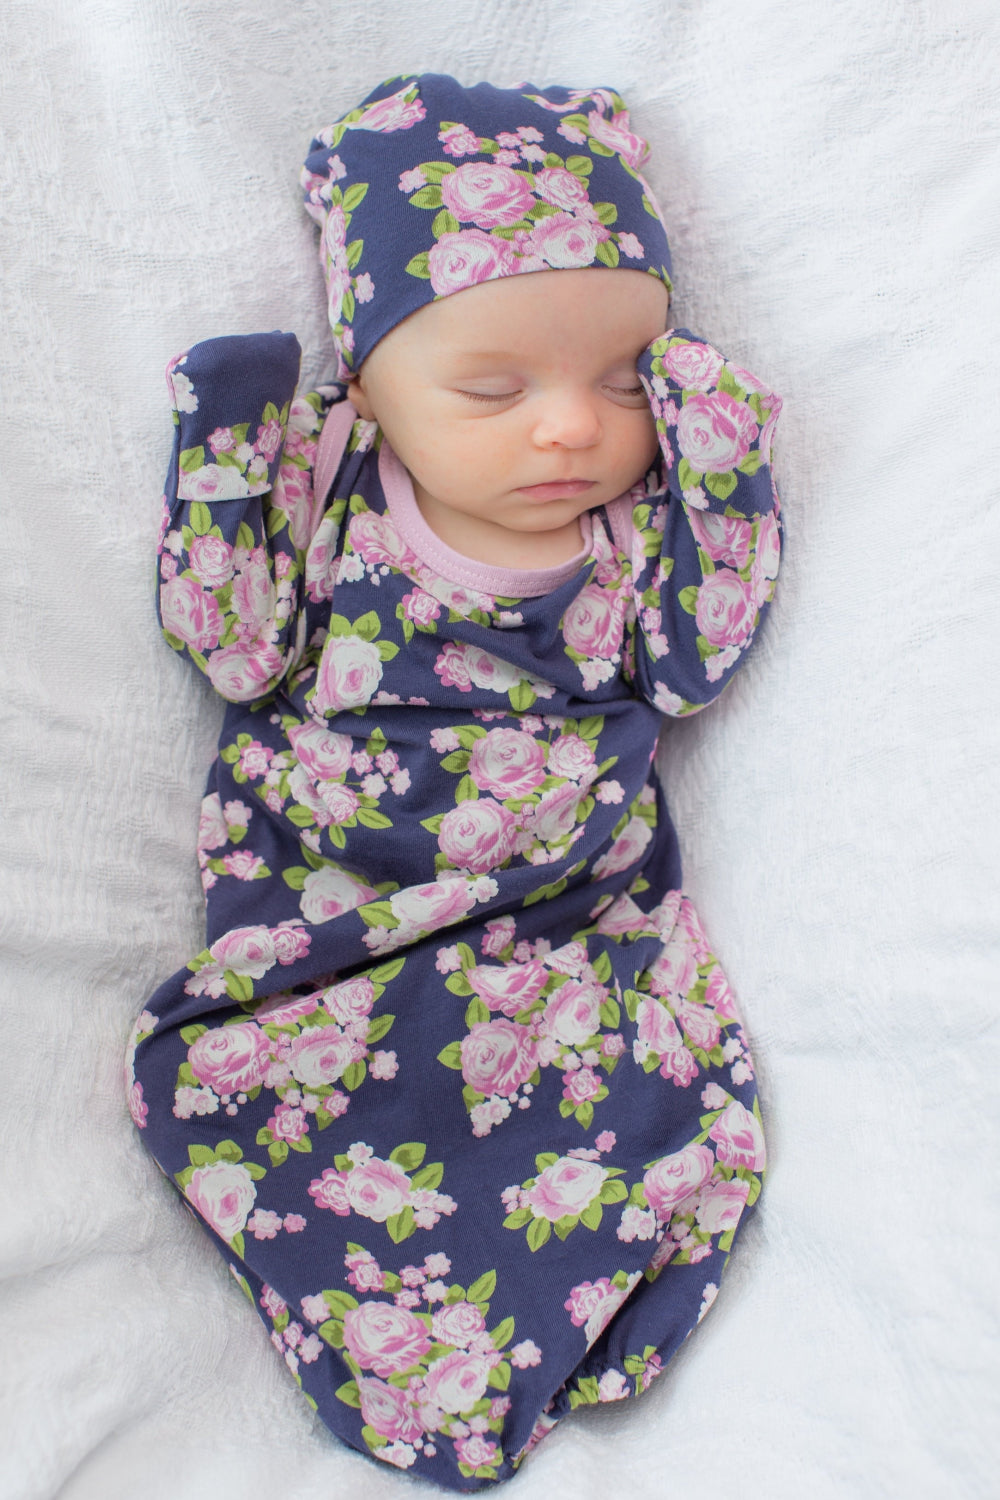 Eve Baby Receiving Gown   Matching Hat Eve Baby Receiving Gown   Matching  Hat 0b55ae169